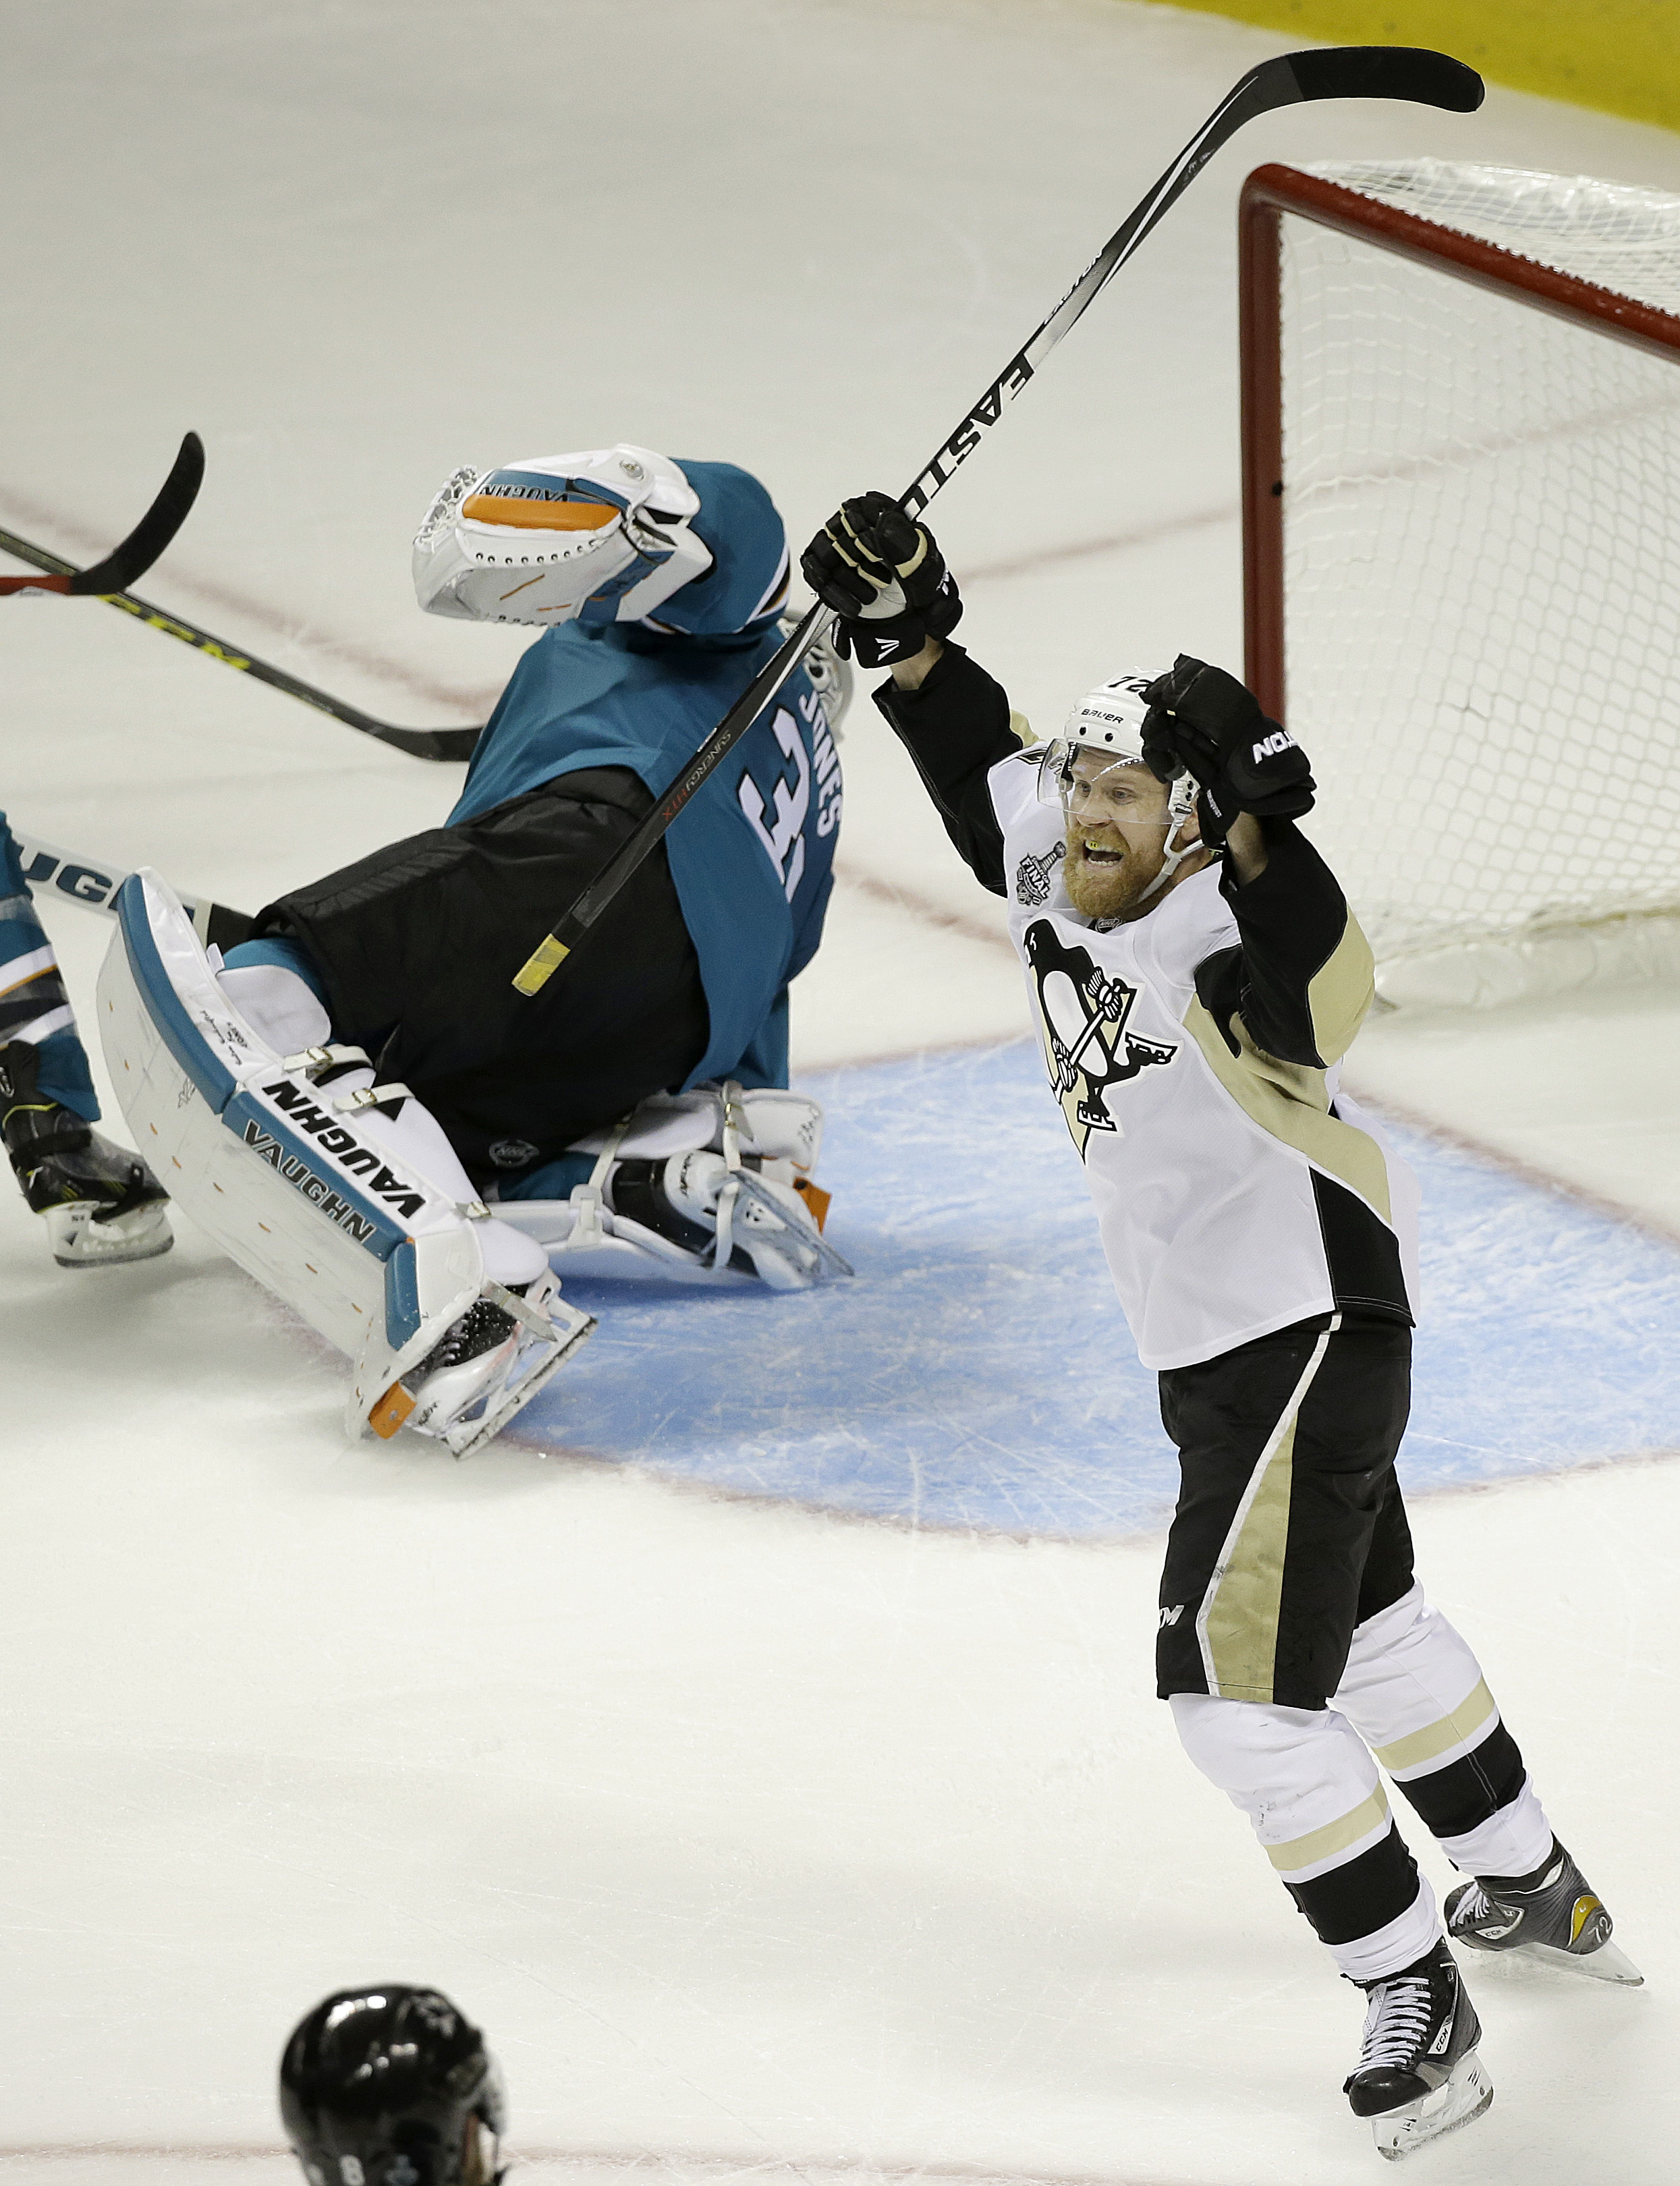 Pittsburgh Penguins right wing Patric Hornqvist, from Sweden, right, celebrates after scoring against San Jose Sharks goalie Martin Jones, left, during the second period of Game 3 of the NHL hockey Stanley Cup Finals in San Jose, Calif., Saturday, June 4,